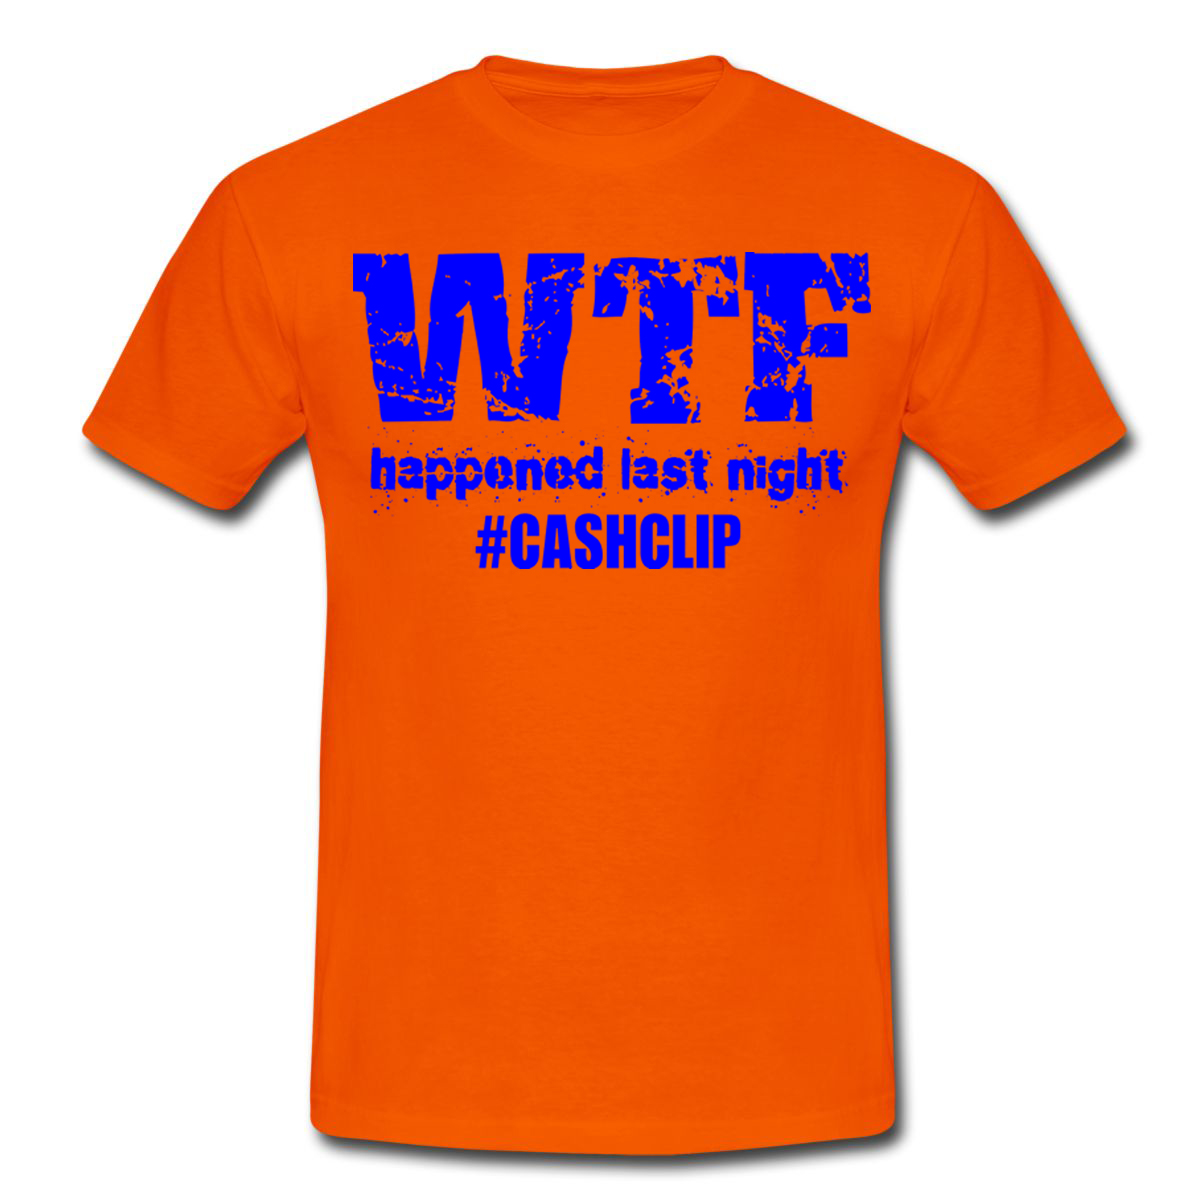 WTF HAPPENED LAST NIGHT T SHIRT ORANGE BLUE EDM HITSTARS ATLANTA SPRING BREAK PANAMA CITY BEACH FL 2014 CASHCLIP MUSIC